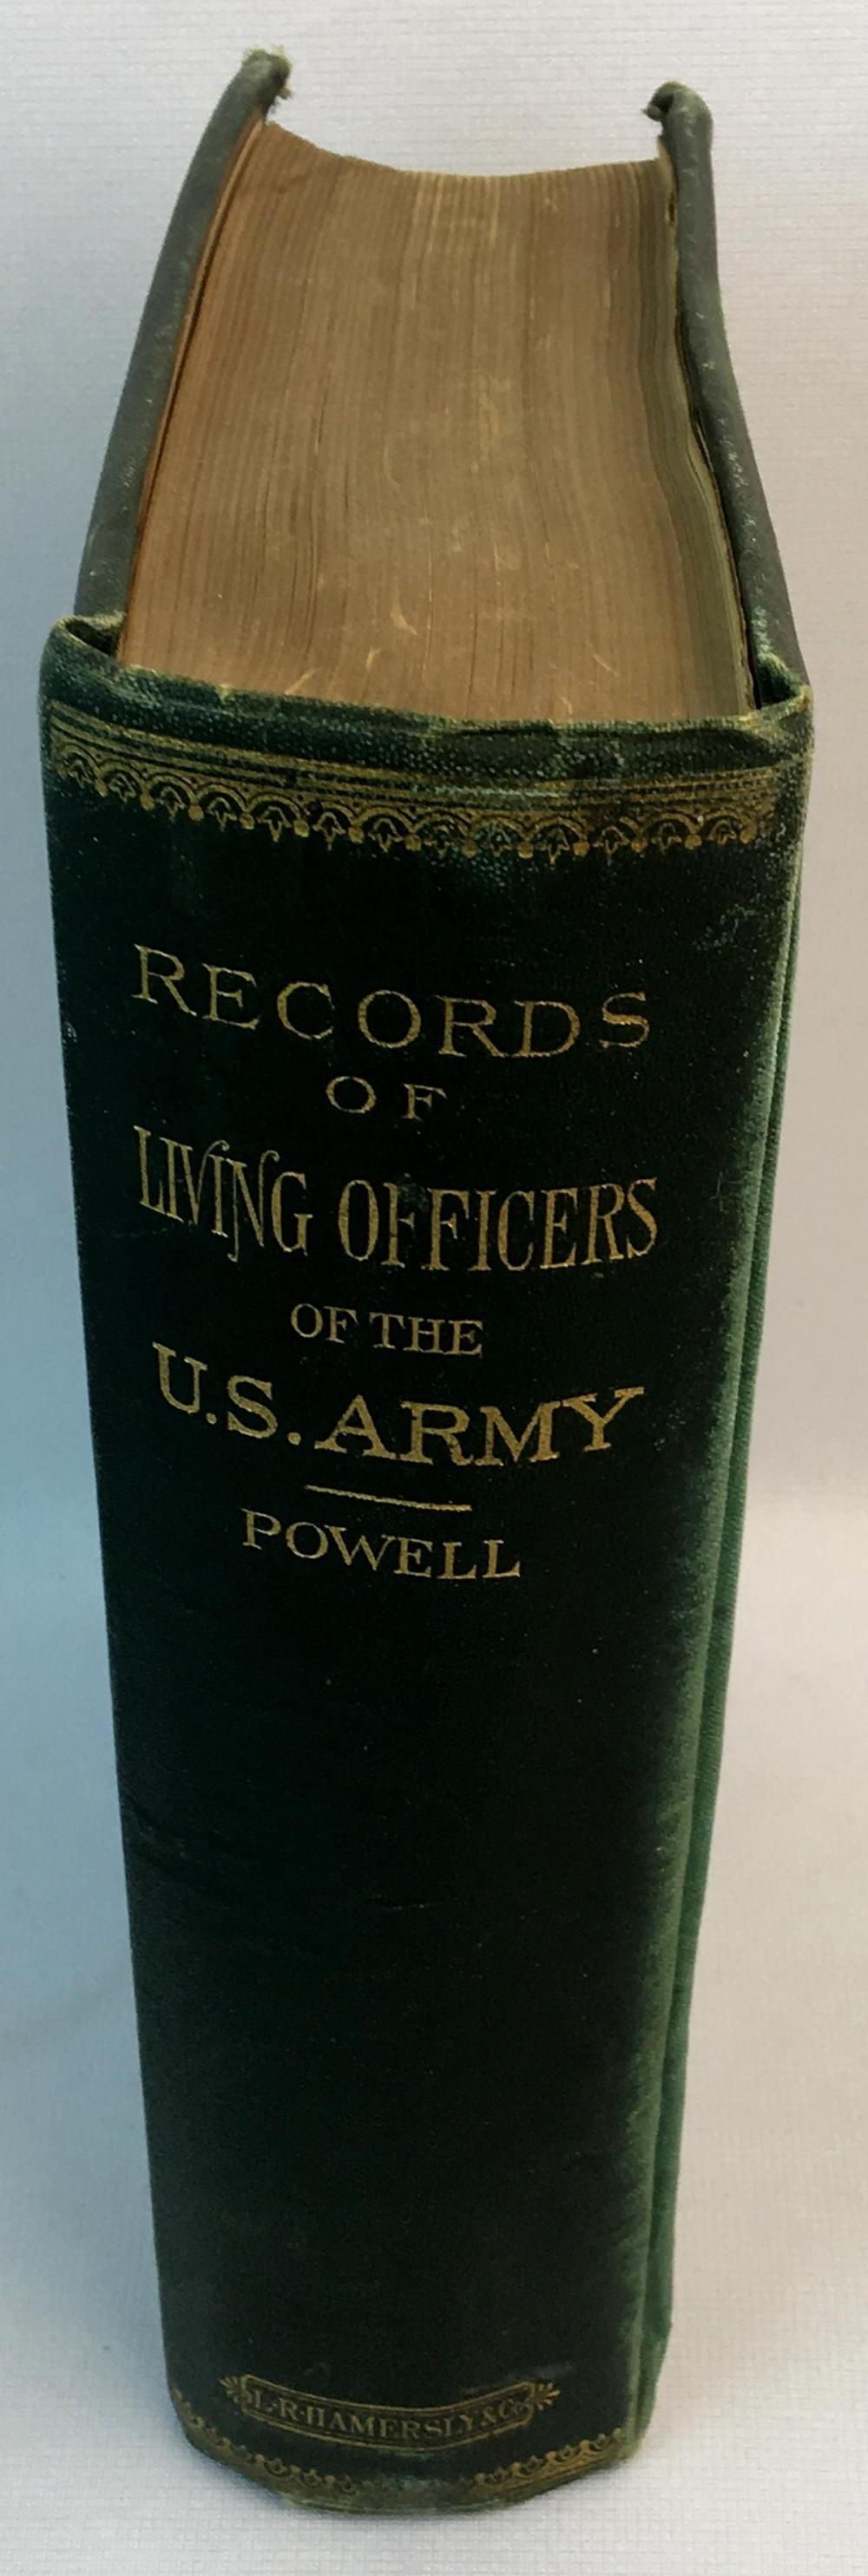 1890 Powell's Records of Living Officers of The United States Army by William H. Powell (Major 22nd Infantry) FIRST EDITION